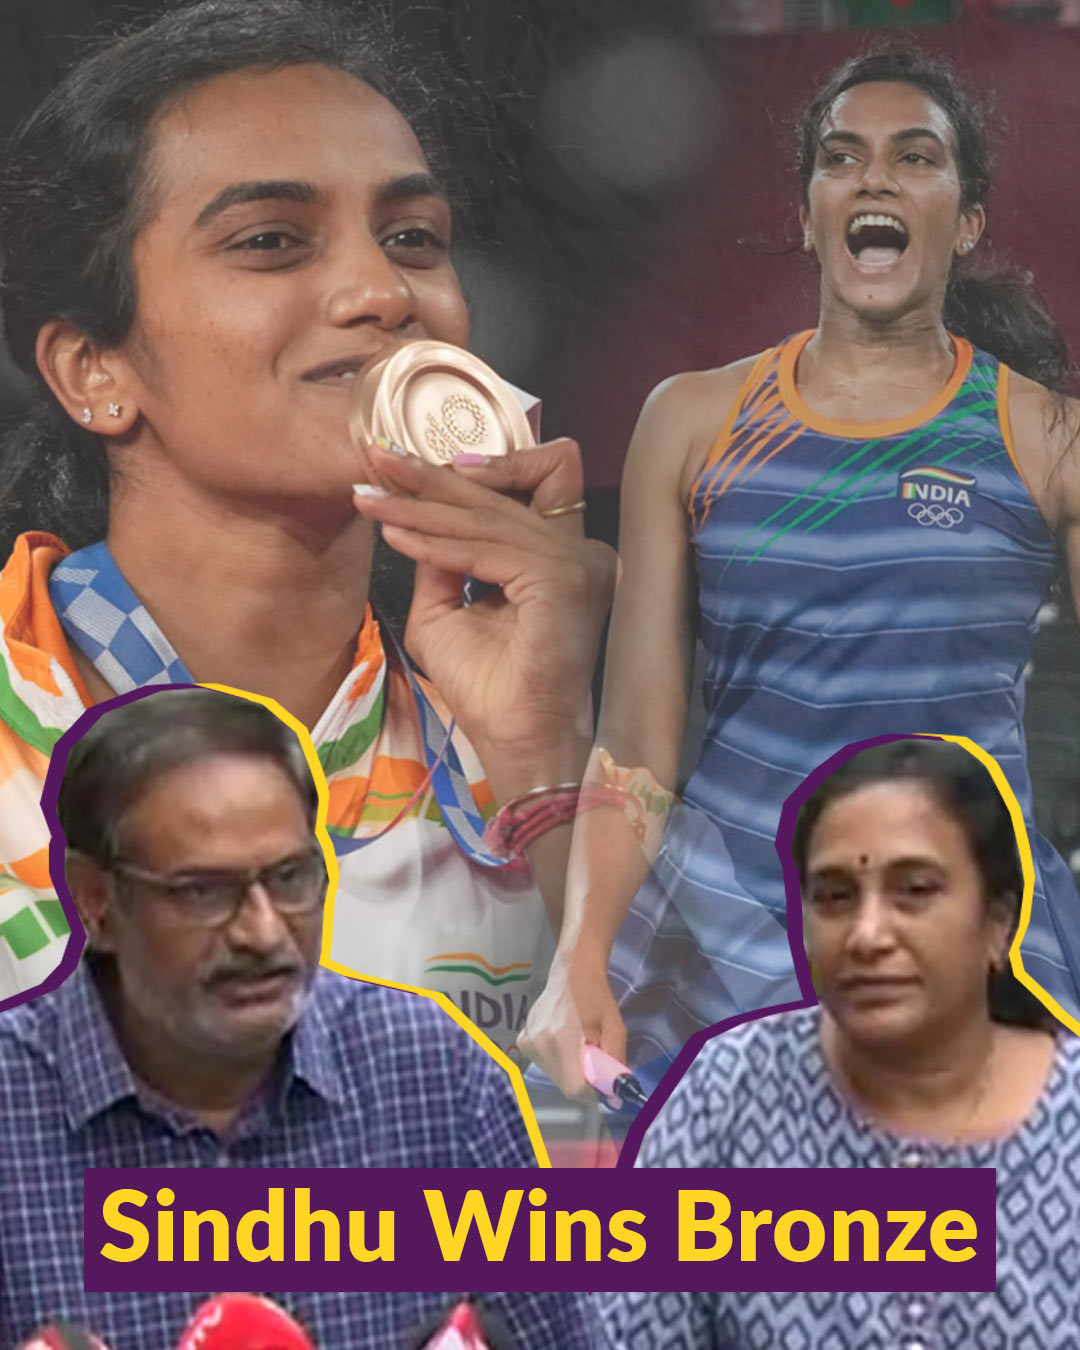 Whenever Sindhu went, she brought India a medal: PV Sindhu's father